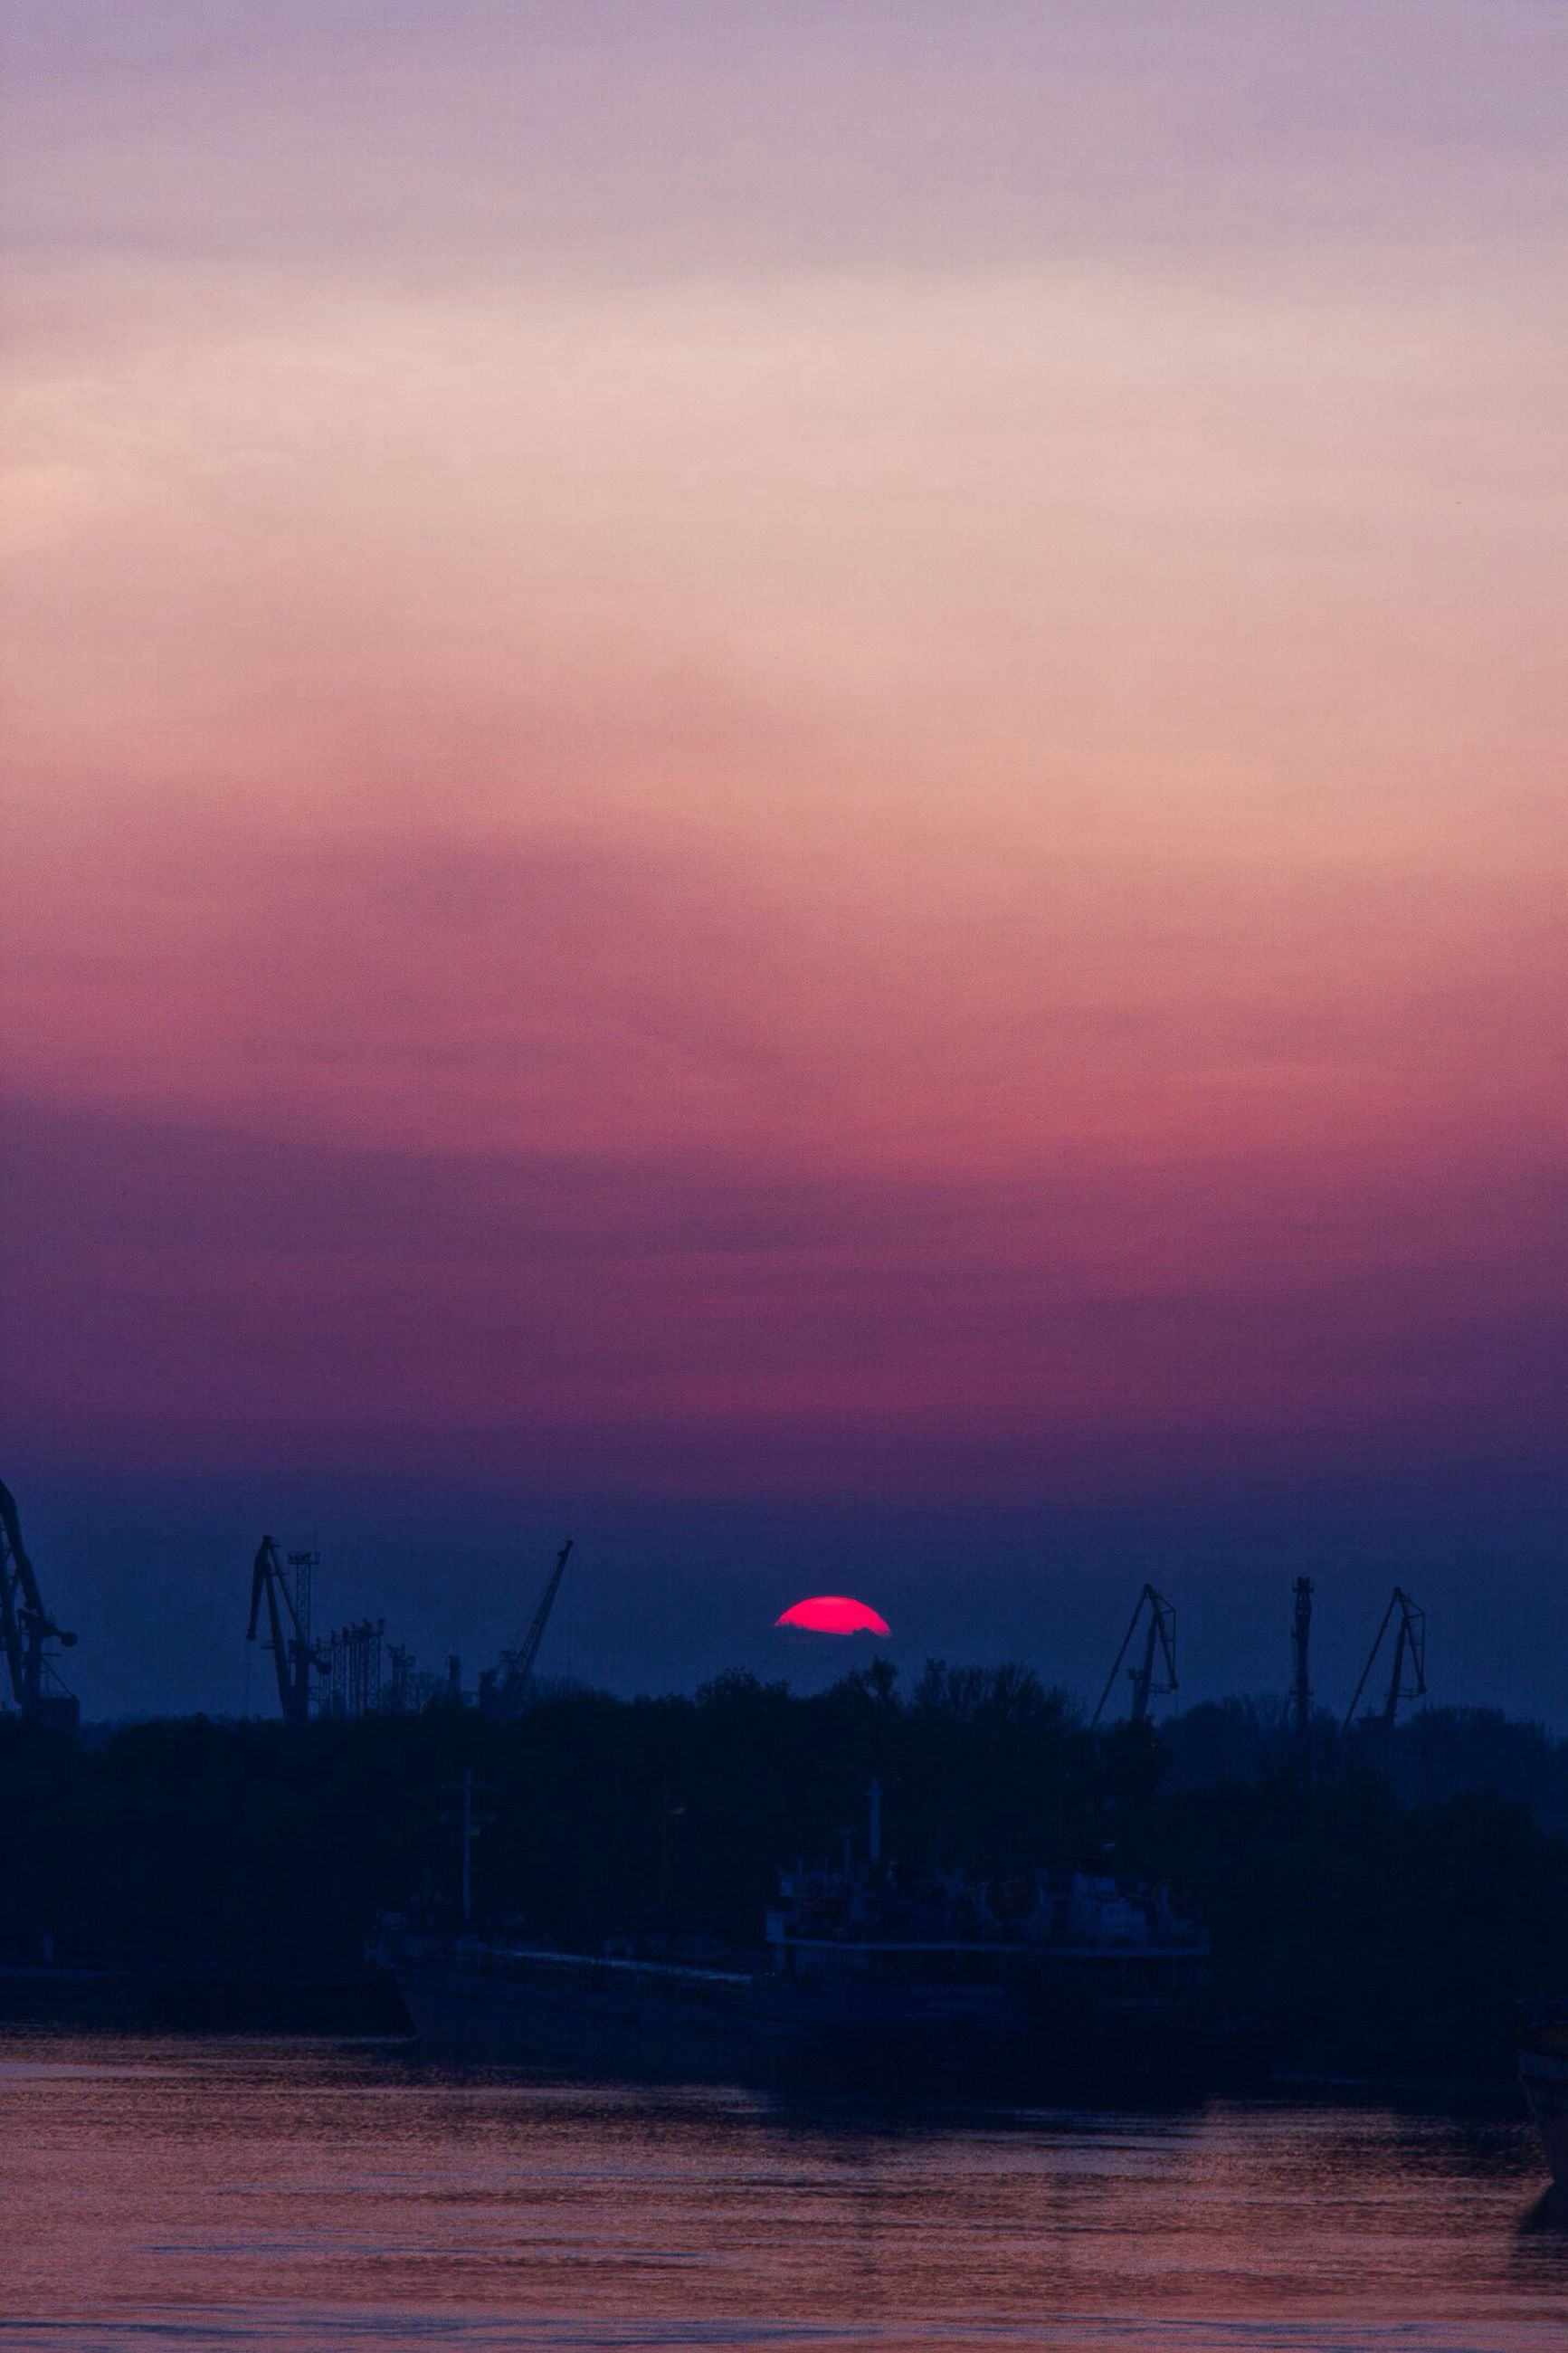 sunset, silhouette, crane - construction machinery, cloud, scenics, tranquil scene, water, sky, tranquility, sea, calm, ocean, development, outline, orange color, crane, waterfront, beauty in nature, dramatic sky, nature, majestic, harbor, romantic sky, sun, outdoors, cloud - sky, no people, moody sky